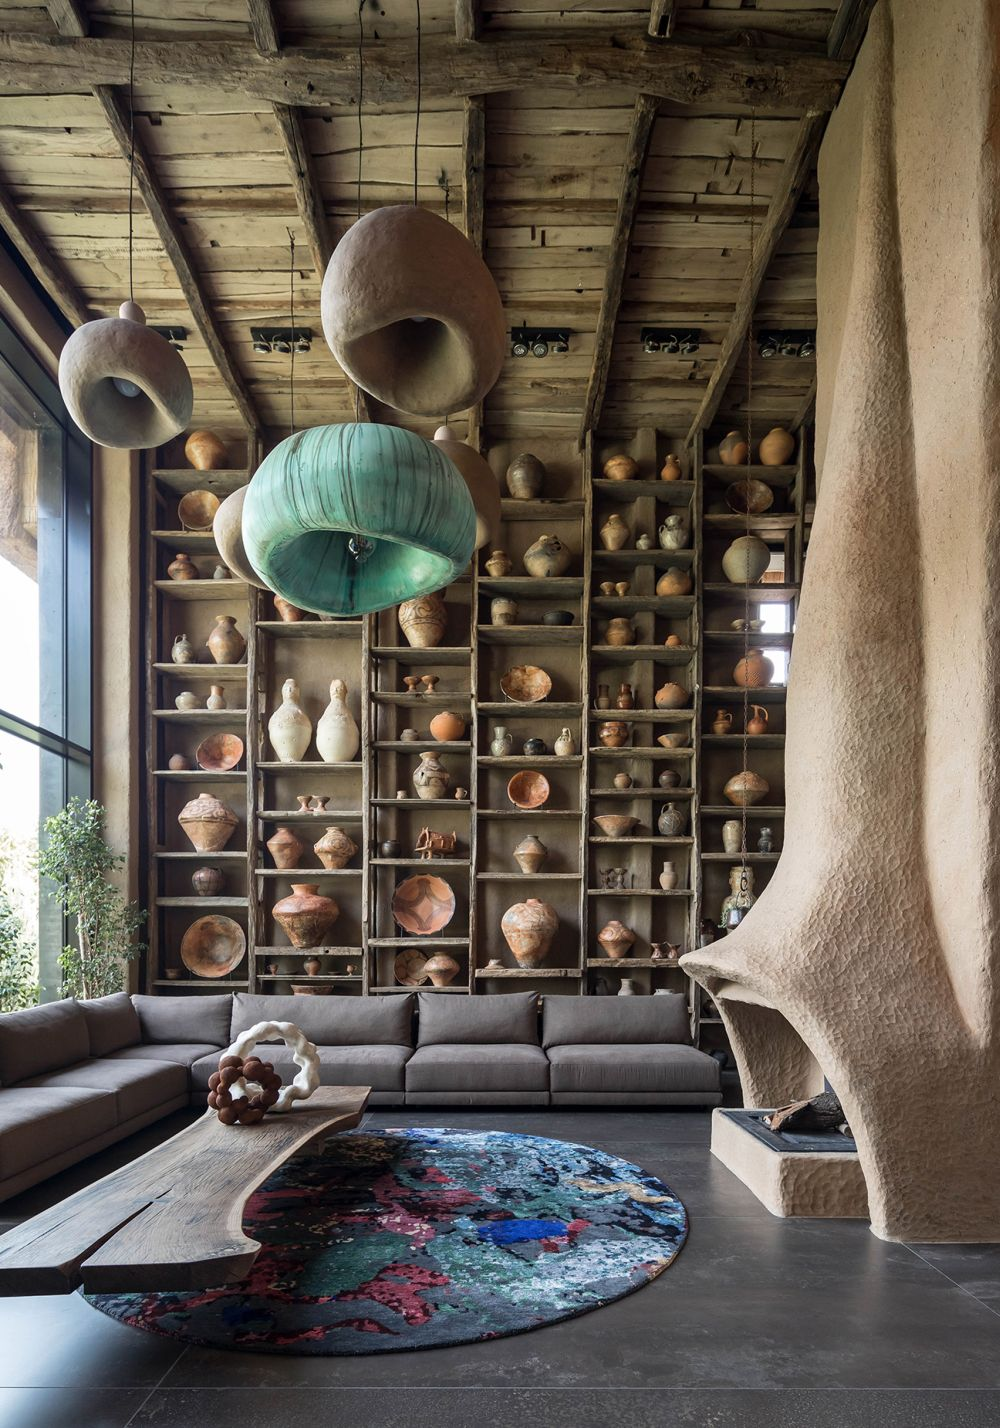 The living room is a double-height space with a very organic decor